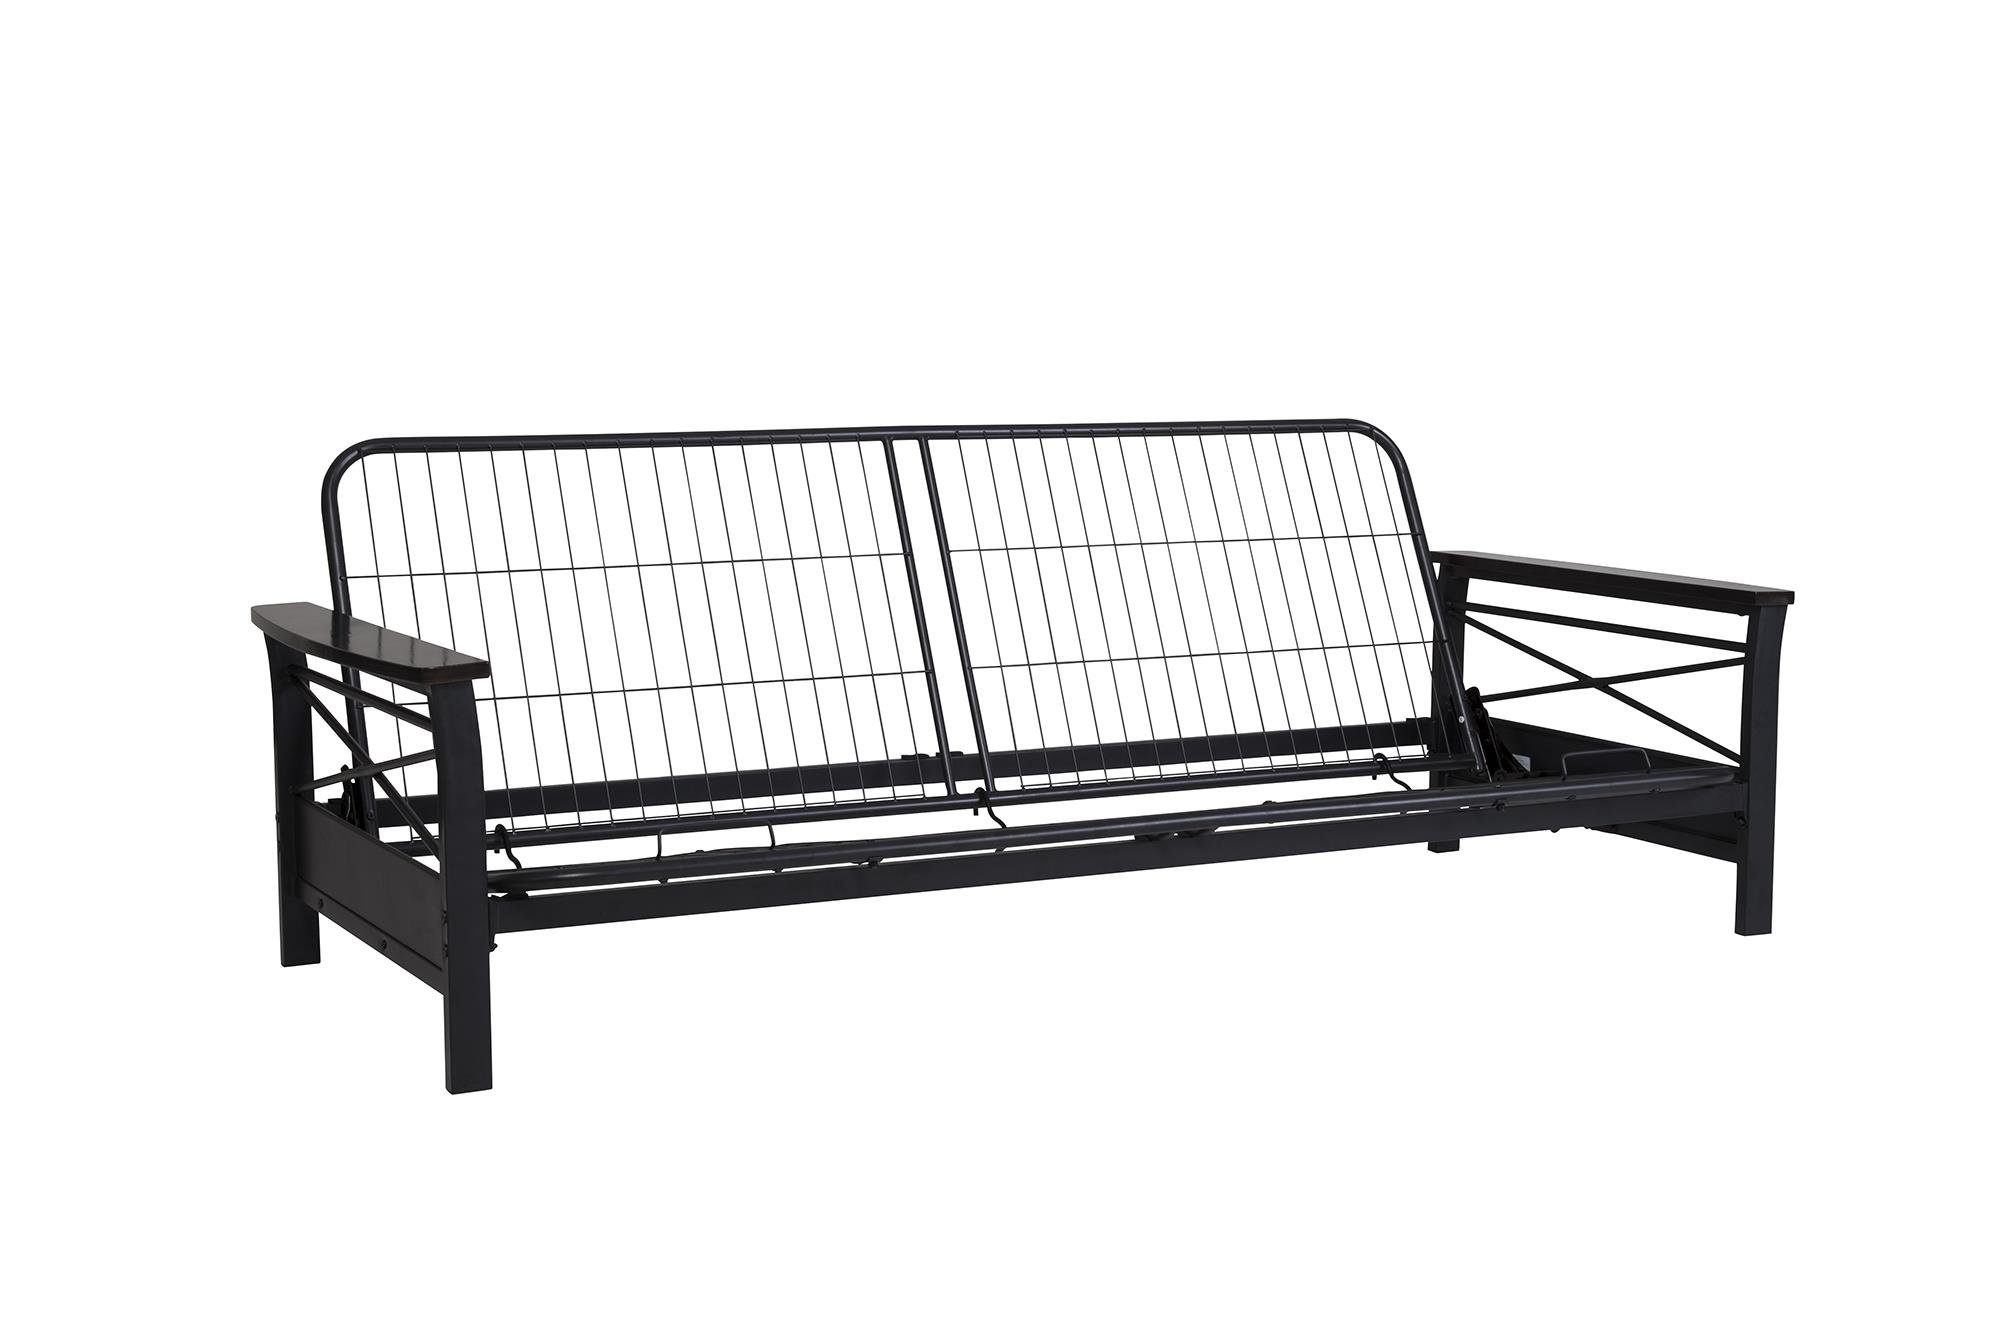 DHP Nadine Metal Futon Frame with Espresso Wood Armrests, Full Size, Mattress Not Included by DHP